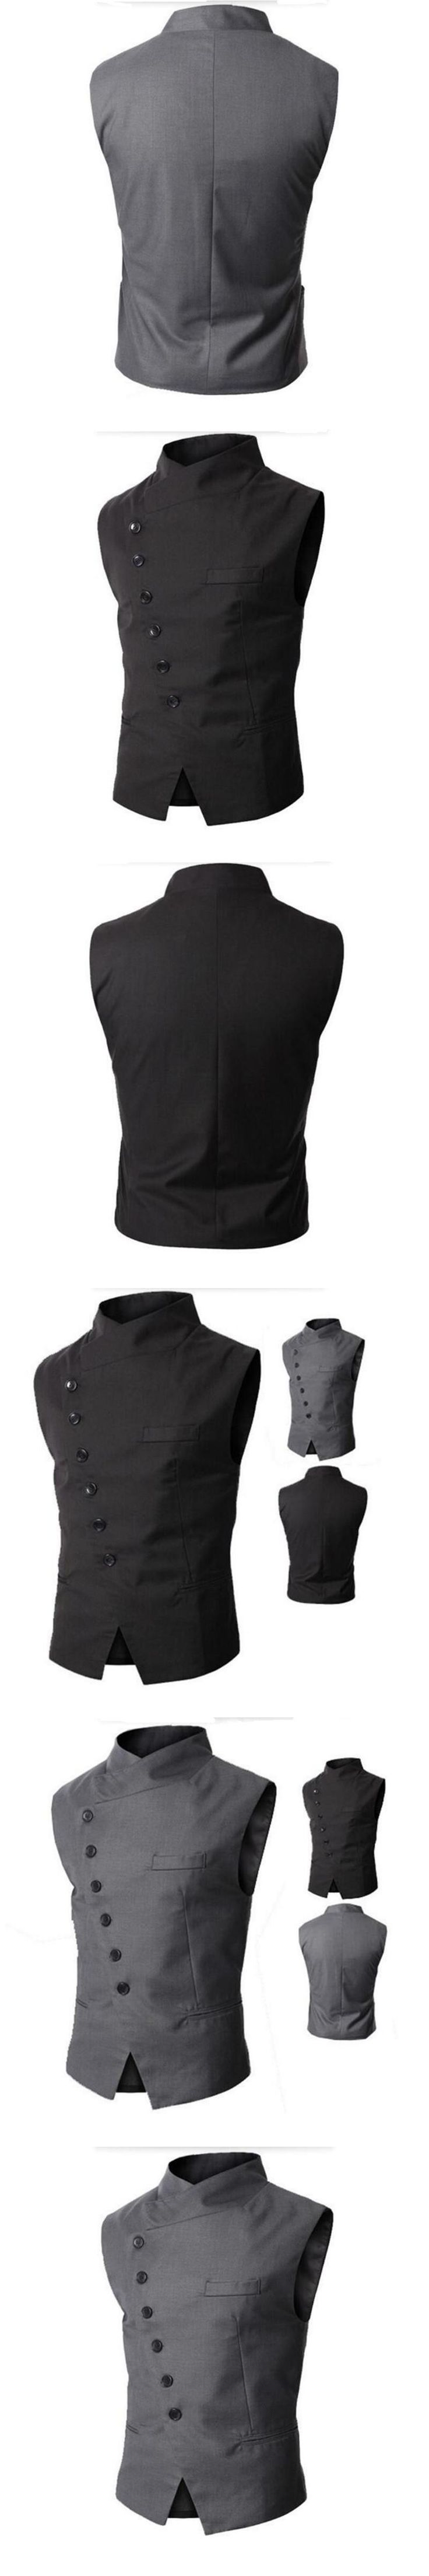 British Style Dress Men Suit Vest Slim Fit Business Casual Jacket Mens Stand Collar Waistcoats Banquet Formal Vest Gilet Hombre